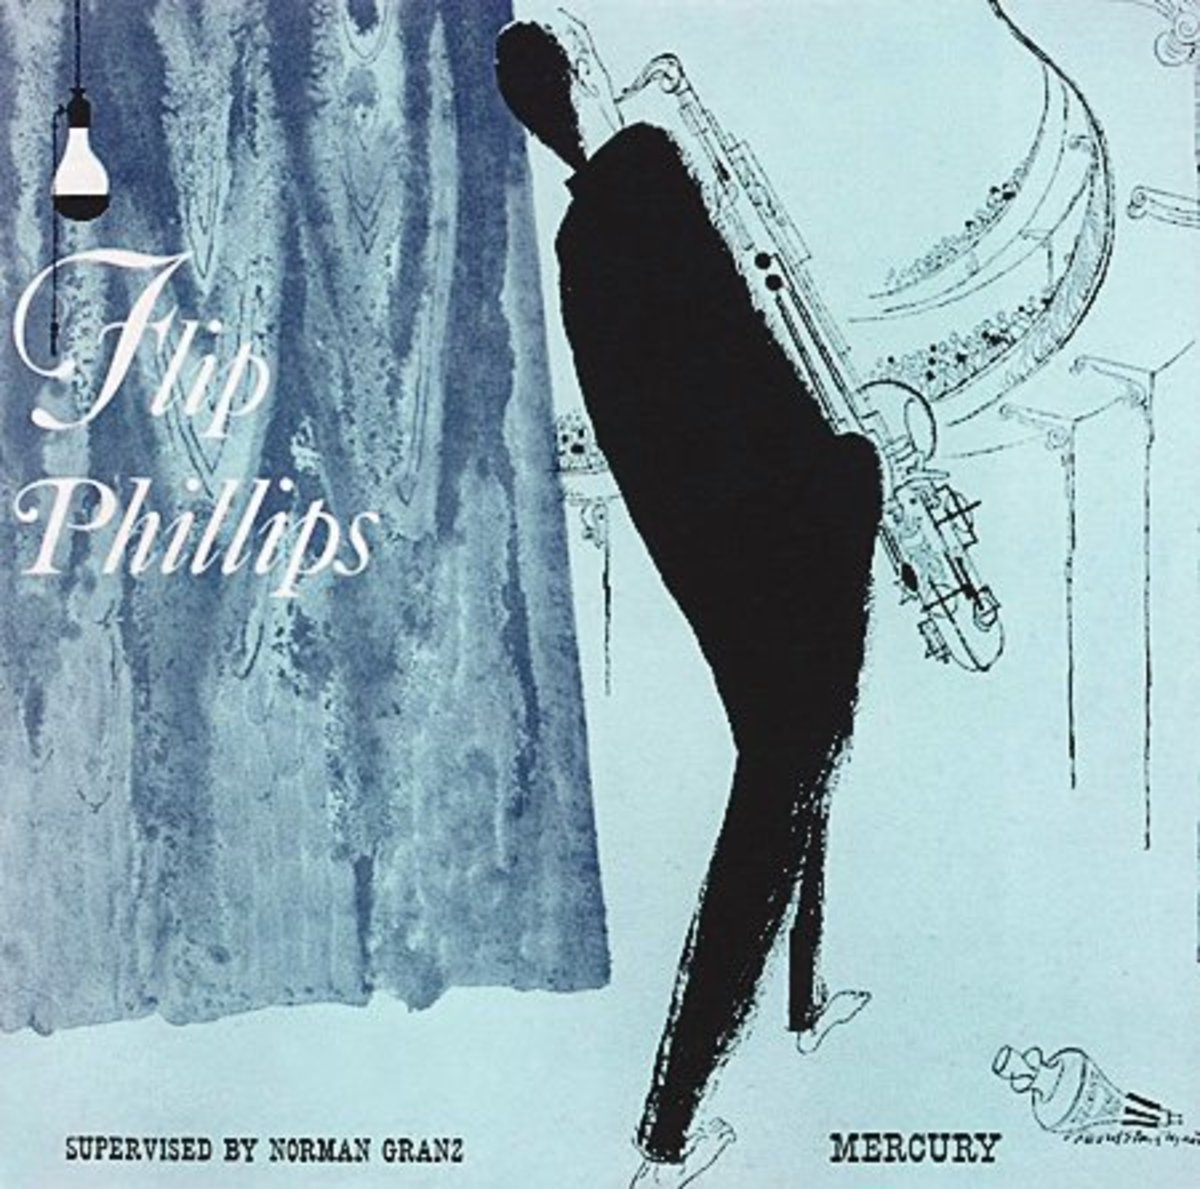 "The Flip Phillips Quartet   Mercury Records 25023 10"" LP Vinyl Record (1950) Album Cover Art by David Stone Martin"